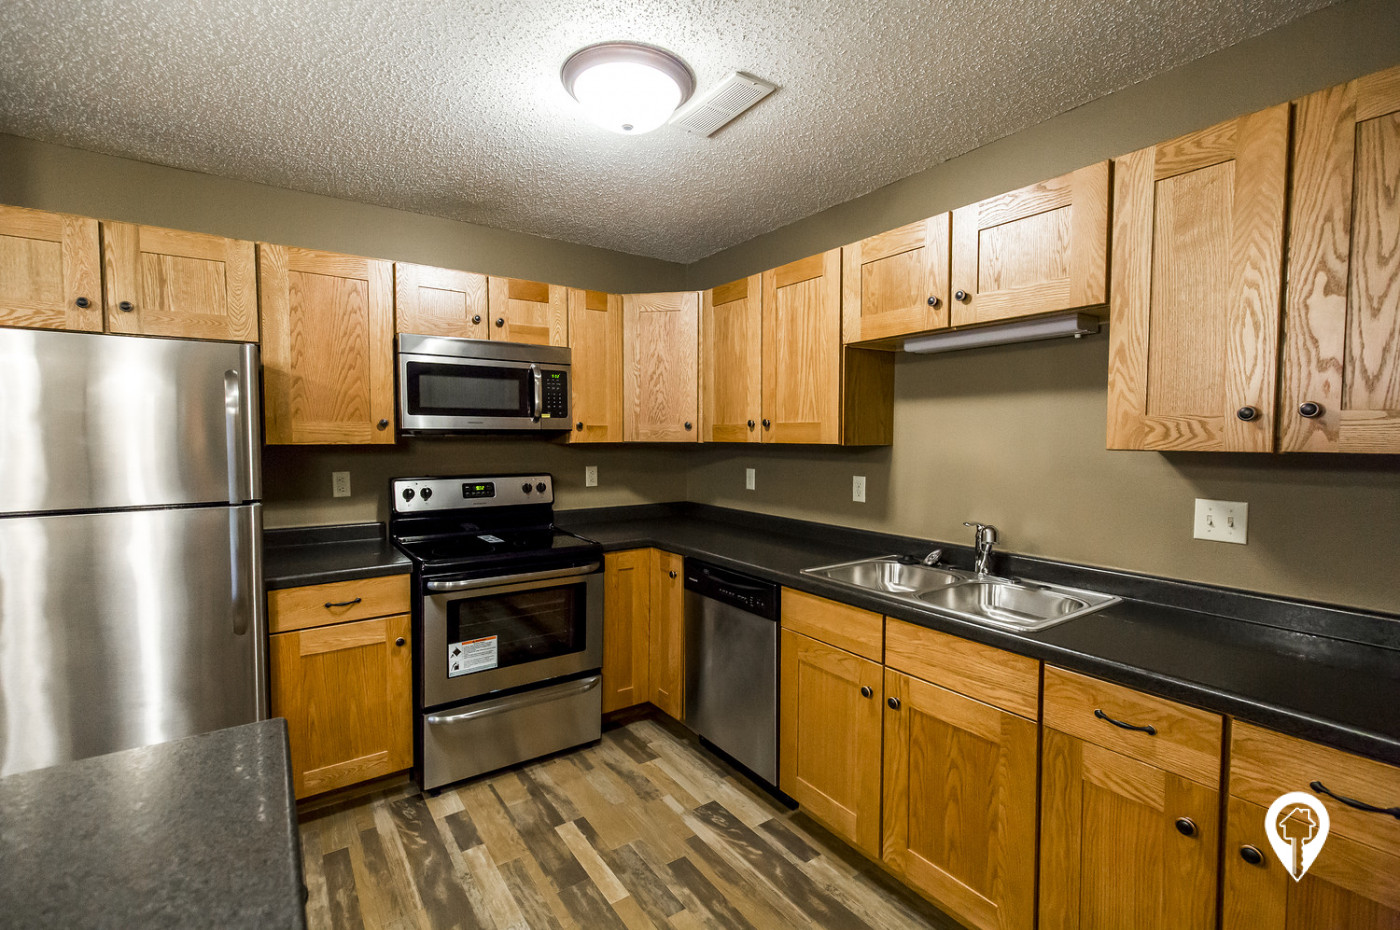 North-Pointe-Apartment-Homes-Kitchens-With-Tons-Cabinet-Space